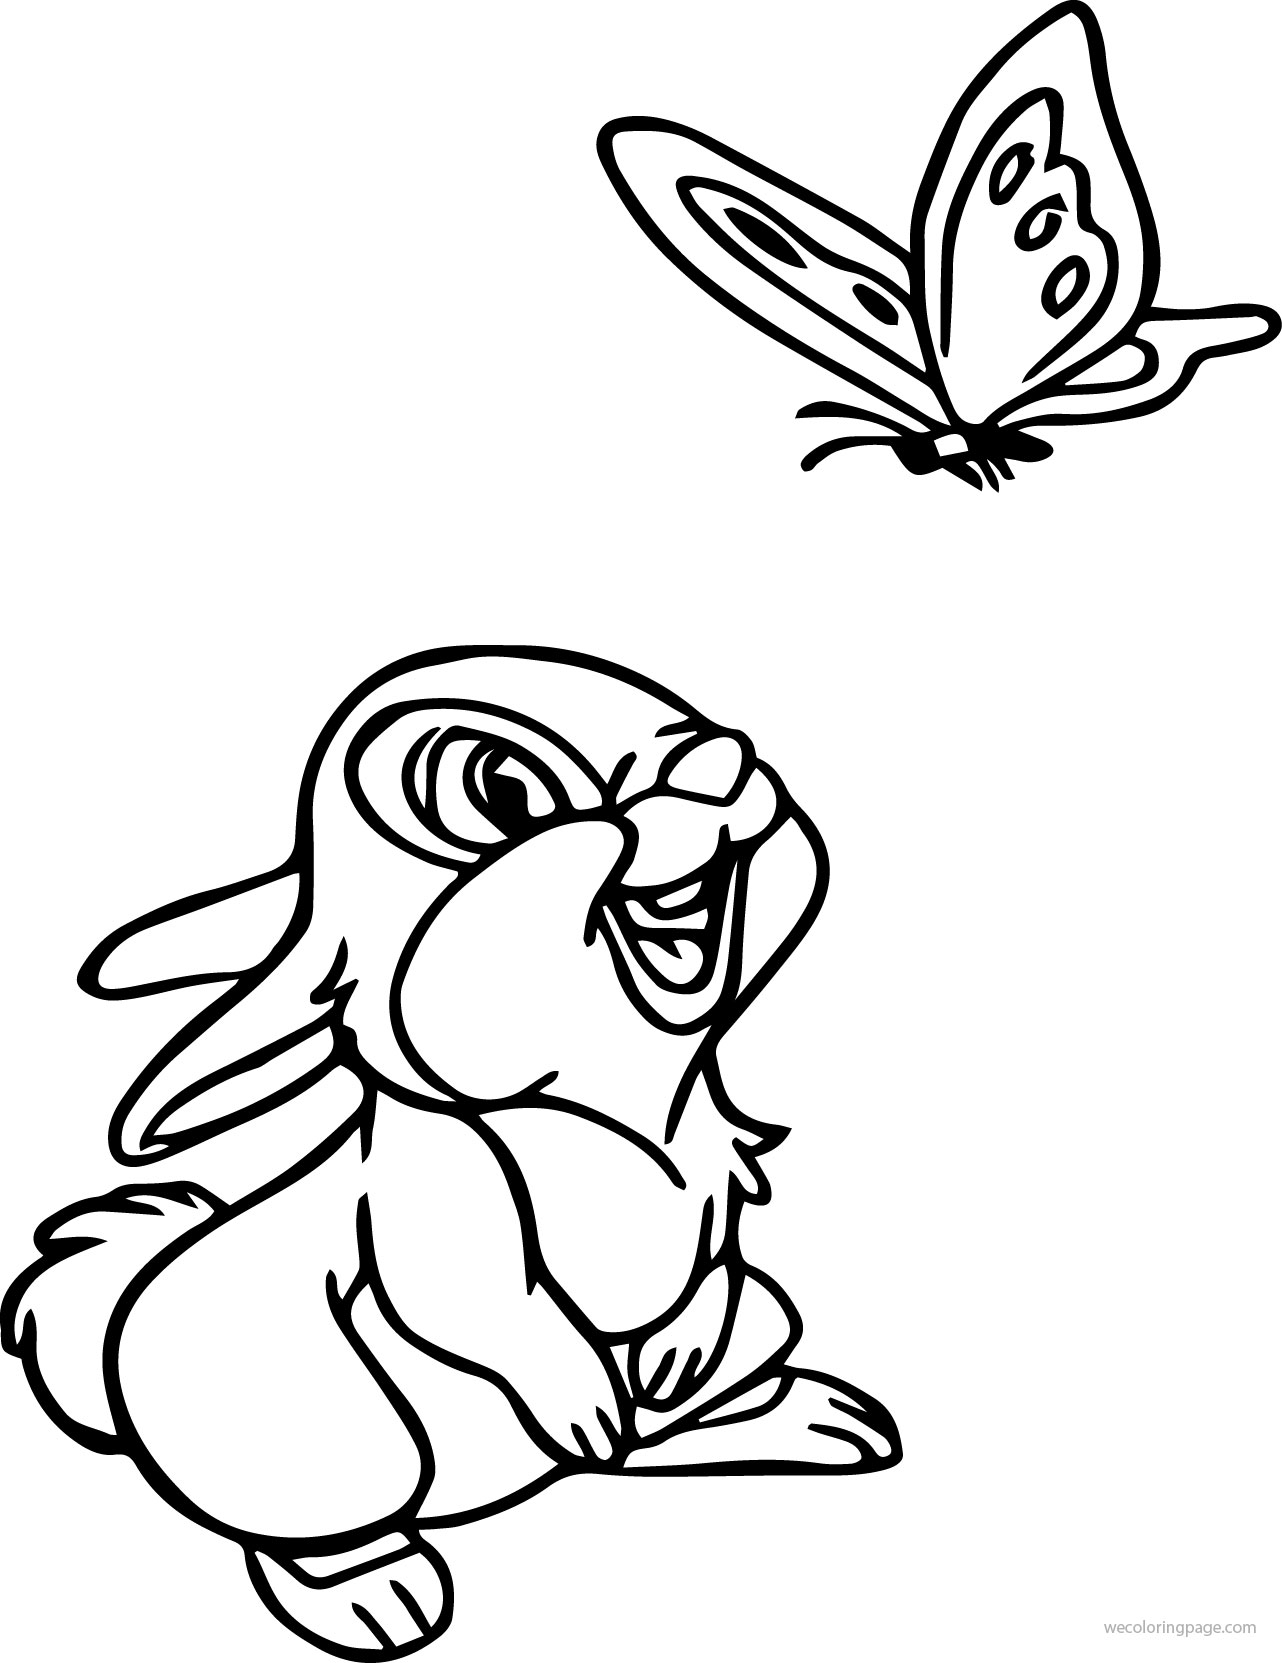 Coloring pages bunny - Disney Bambi Thumber Bunny Coloring Pages